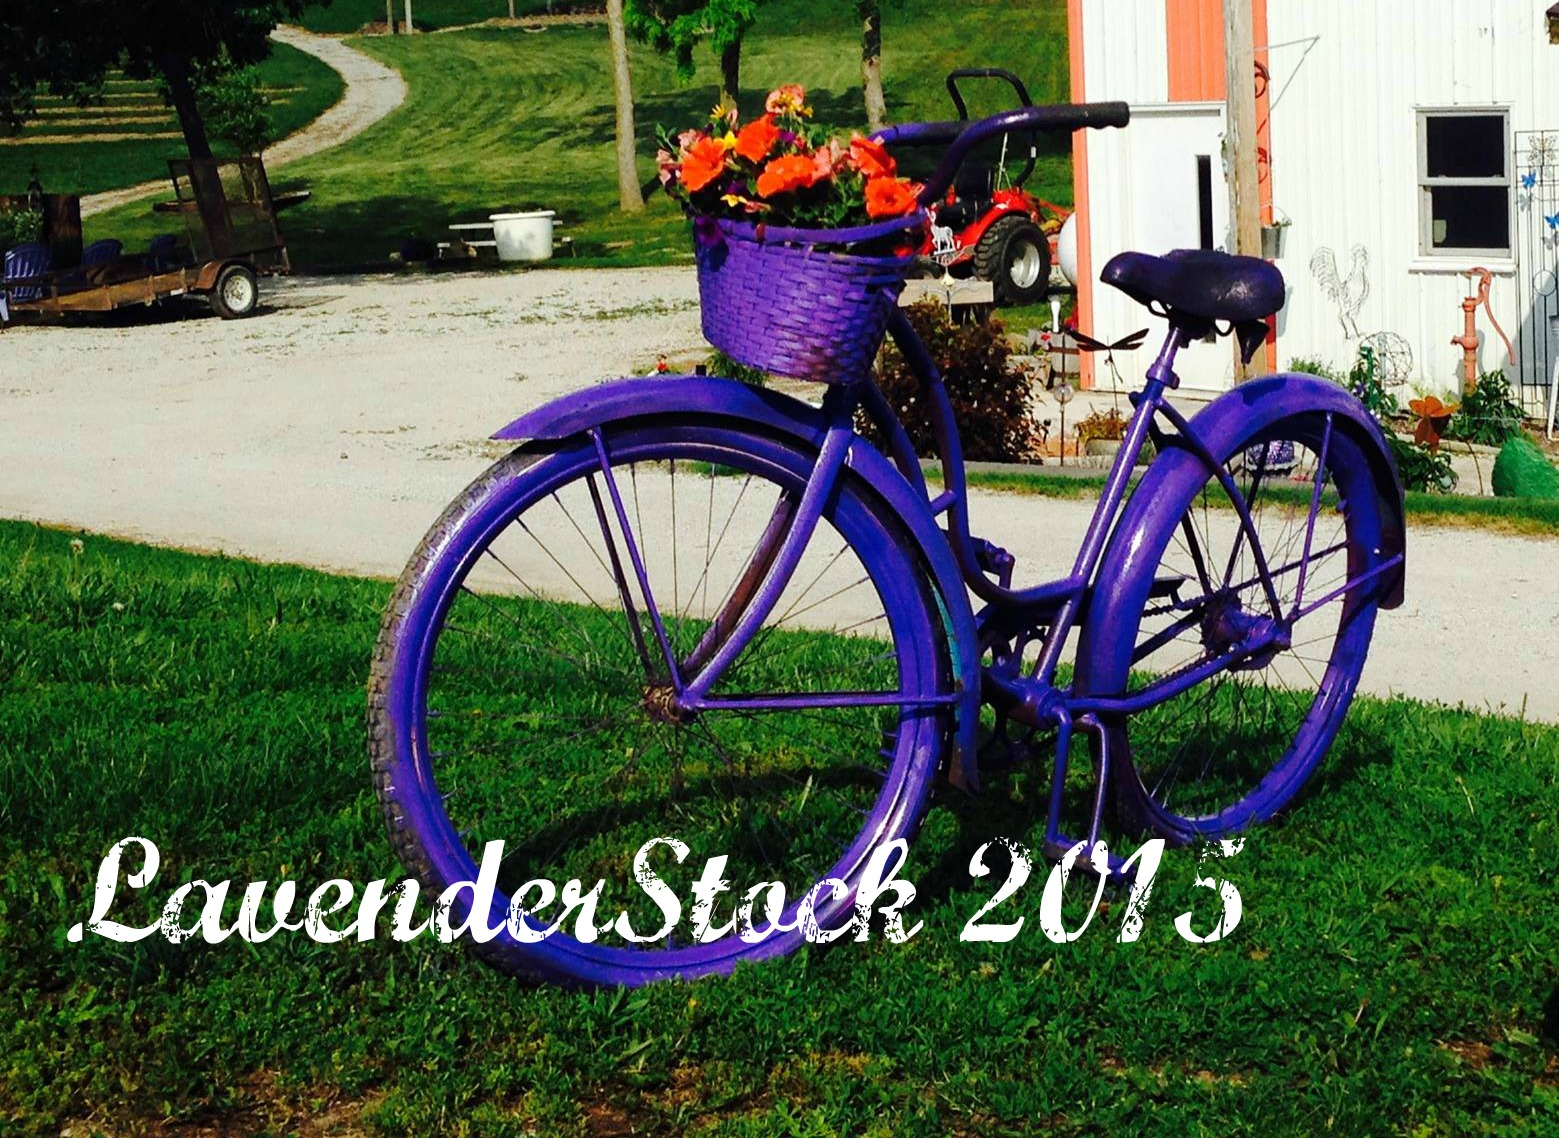 LAvenderstock was our newest event in 2015. We are looking forward to growing this event into our signature gathering each year.. This year Lavender Stock will be July 20th from 10 am to 5 pm.  Lots of fun things planned